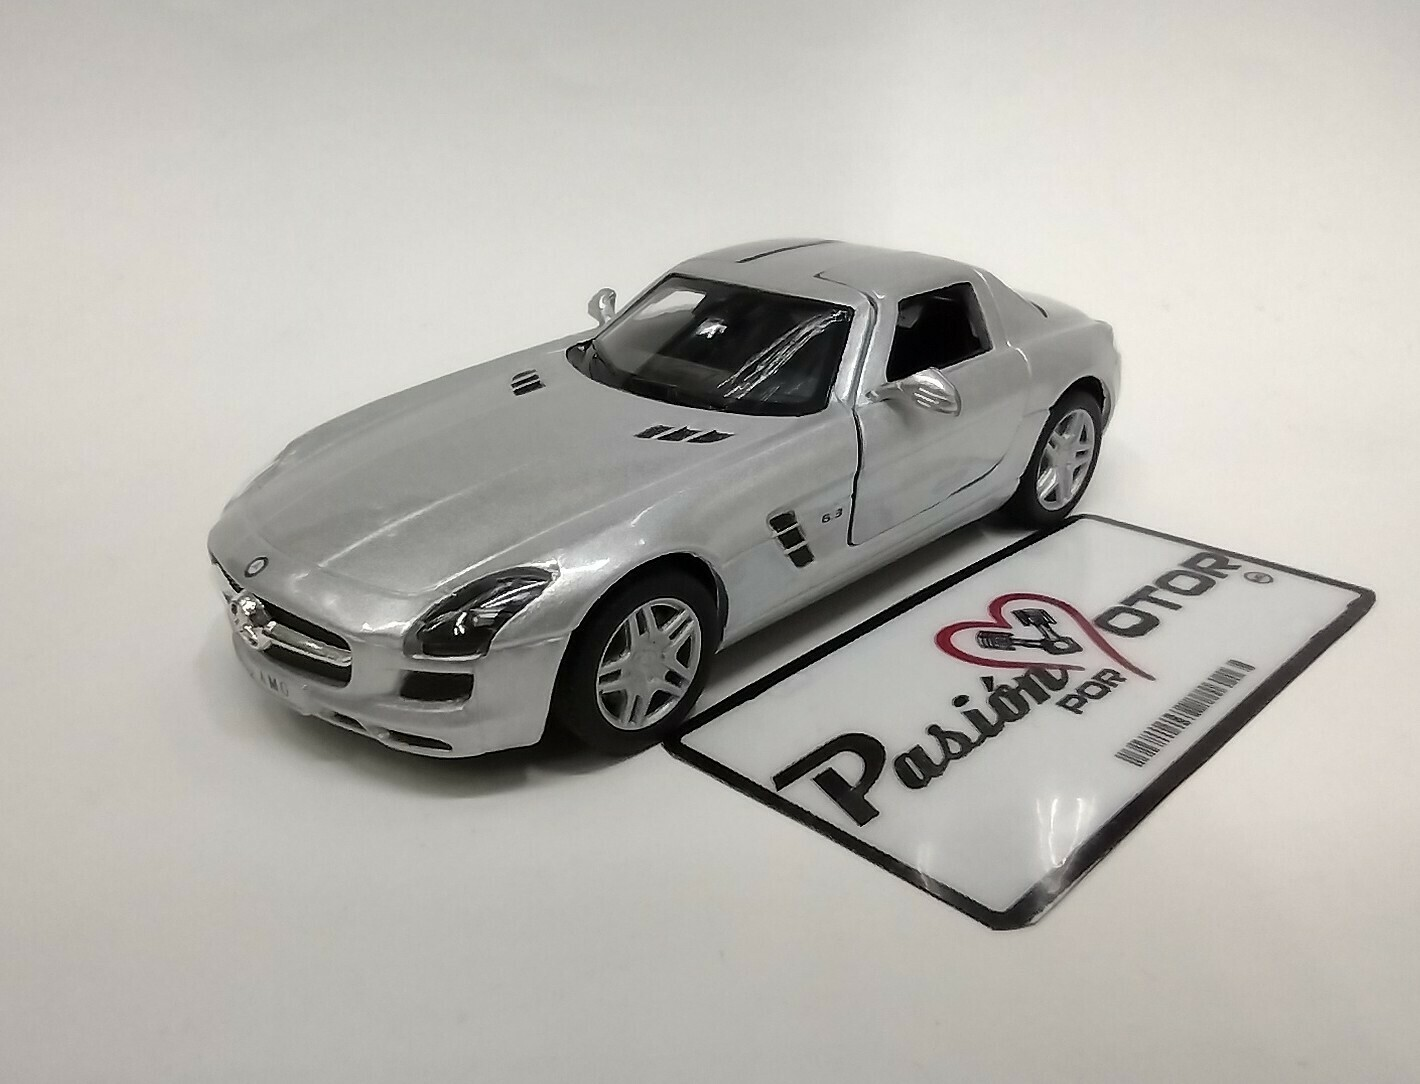 Kinsmart 1:36 Mercedes Benz SLS AMG Coupe 2010 Plata Display a Granel 1:32